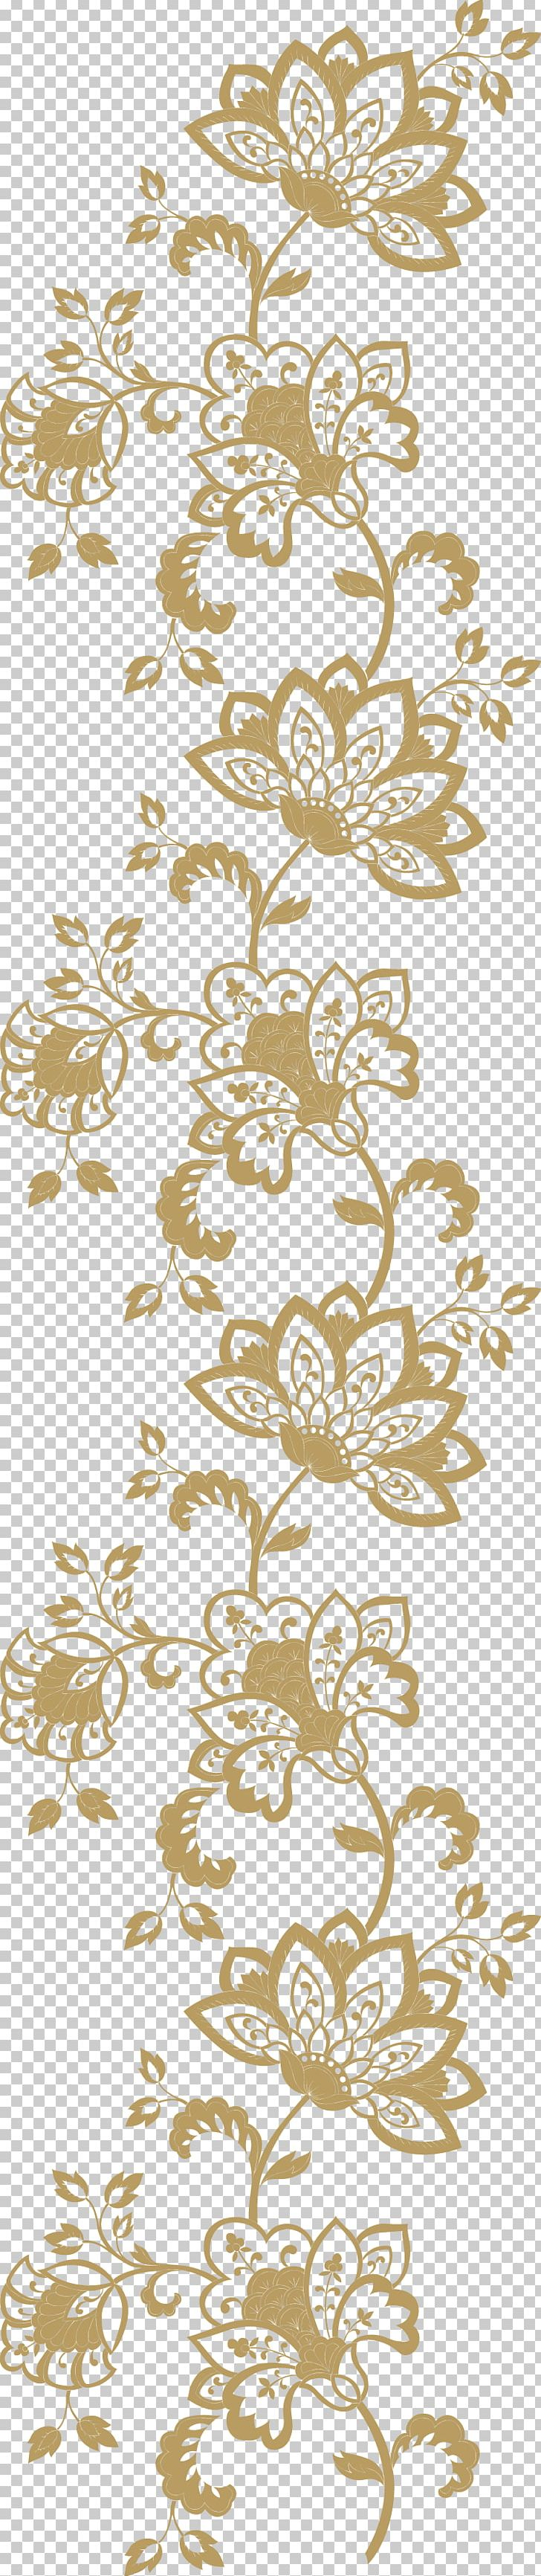 Euclidean Pattern PNG, Clipart, Angle, Area, Art Deco, Border Texture, Champagne Gold Free PNG Download